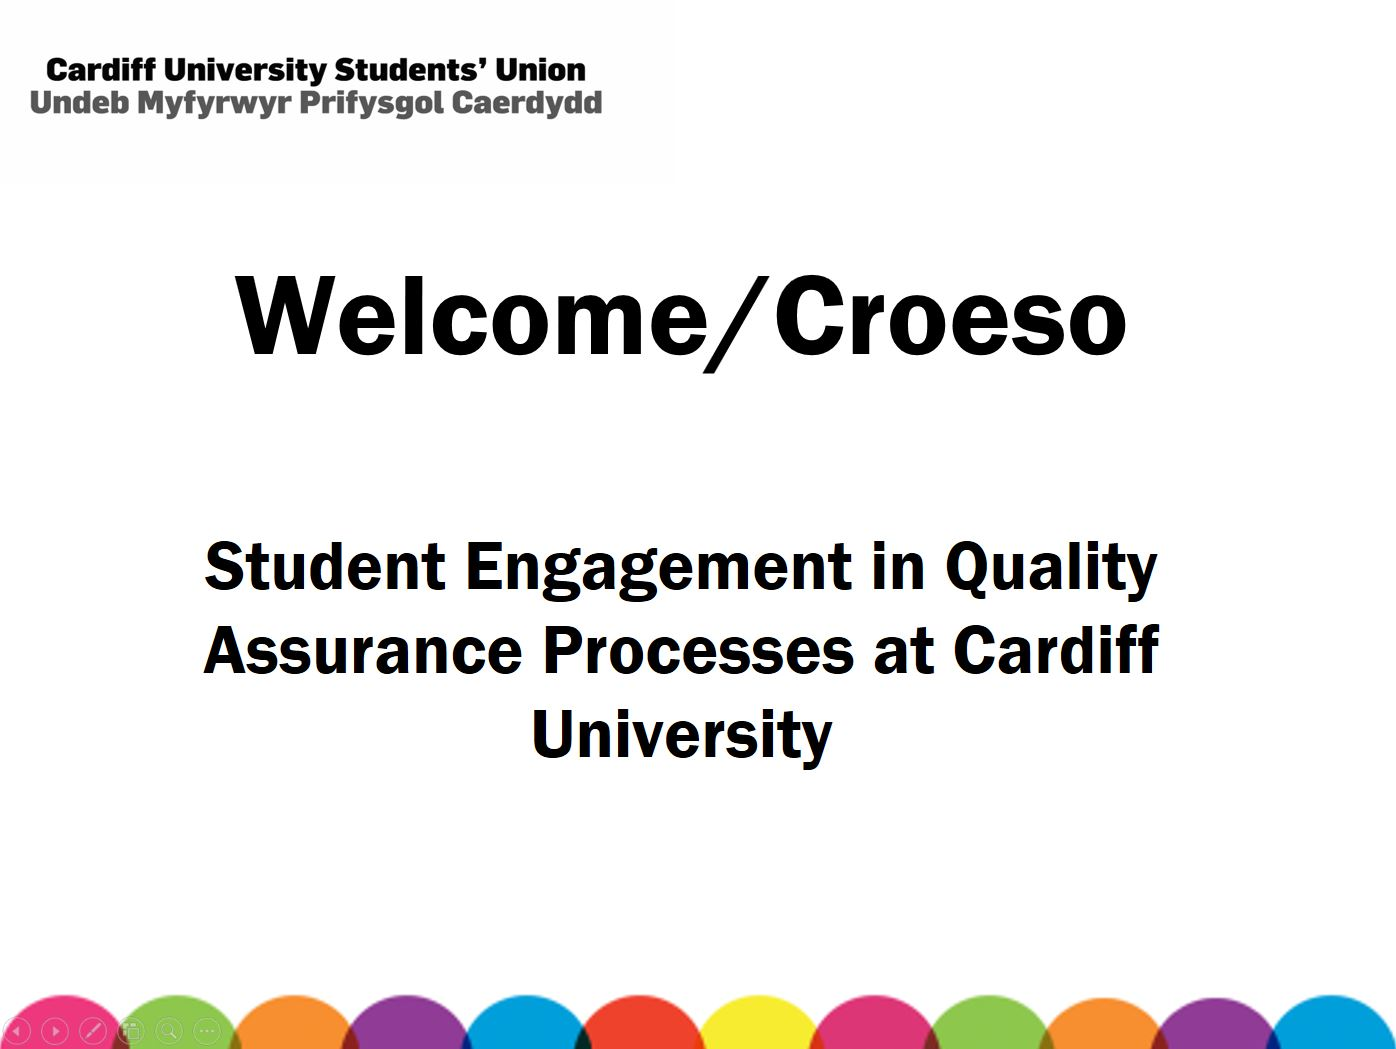 Student Engagement in Quality Assurance Processes at Cardiff University